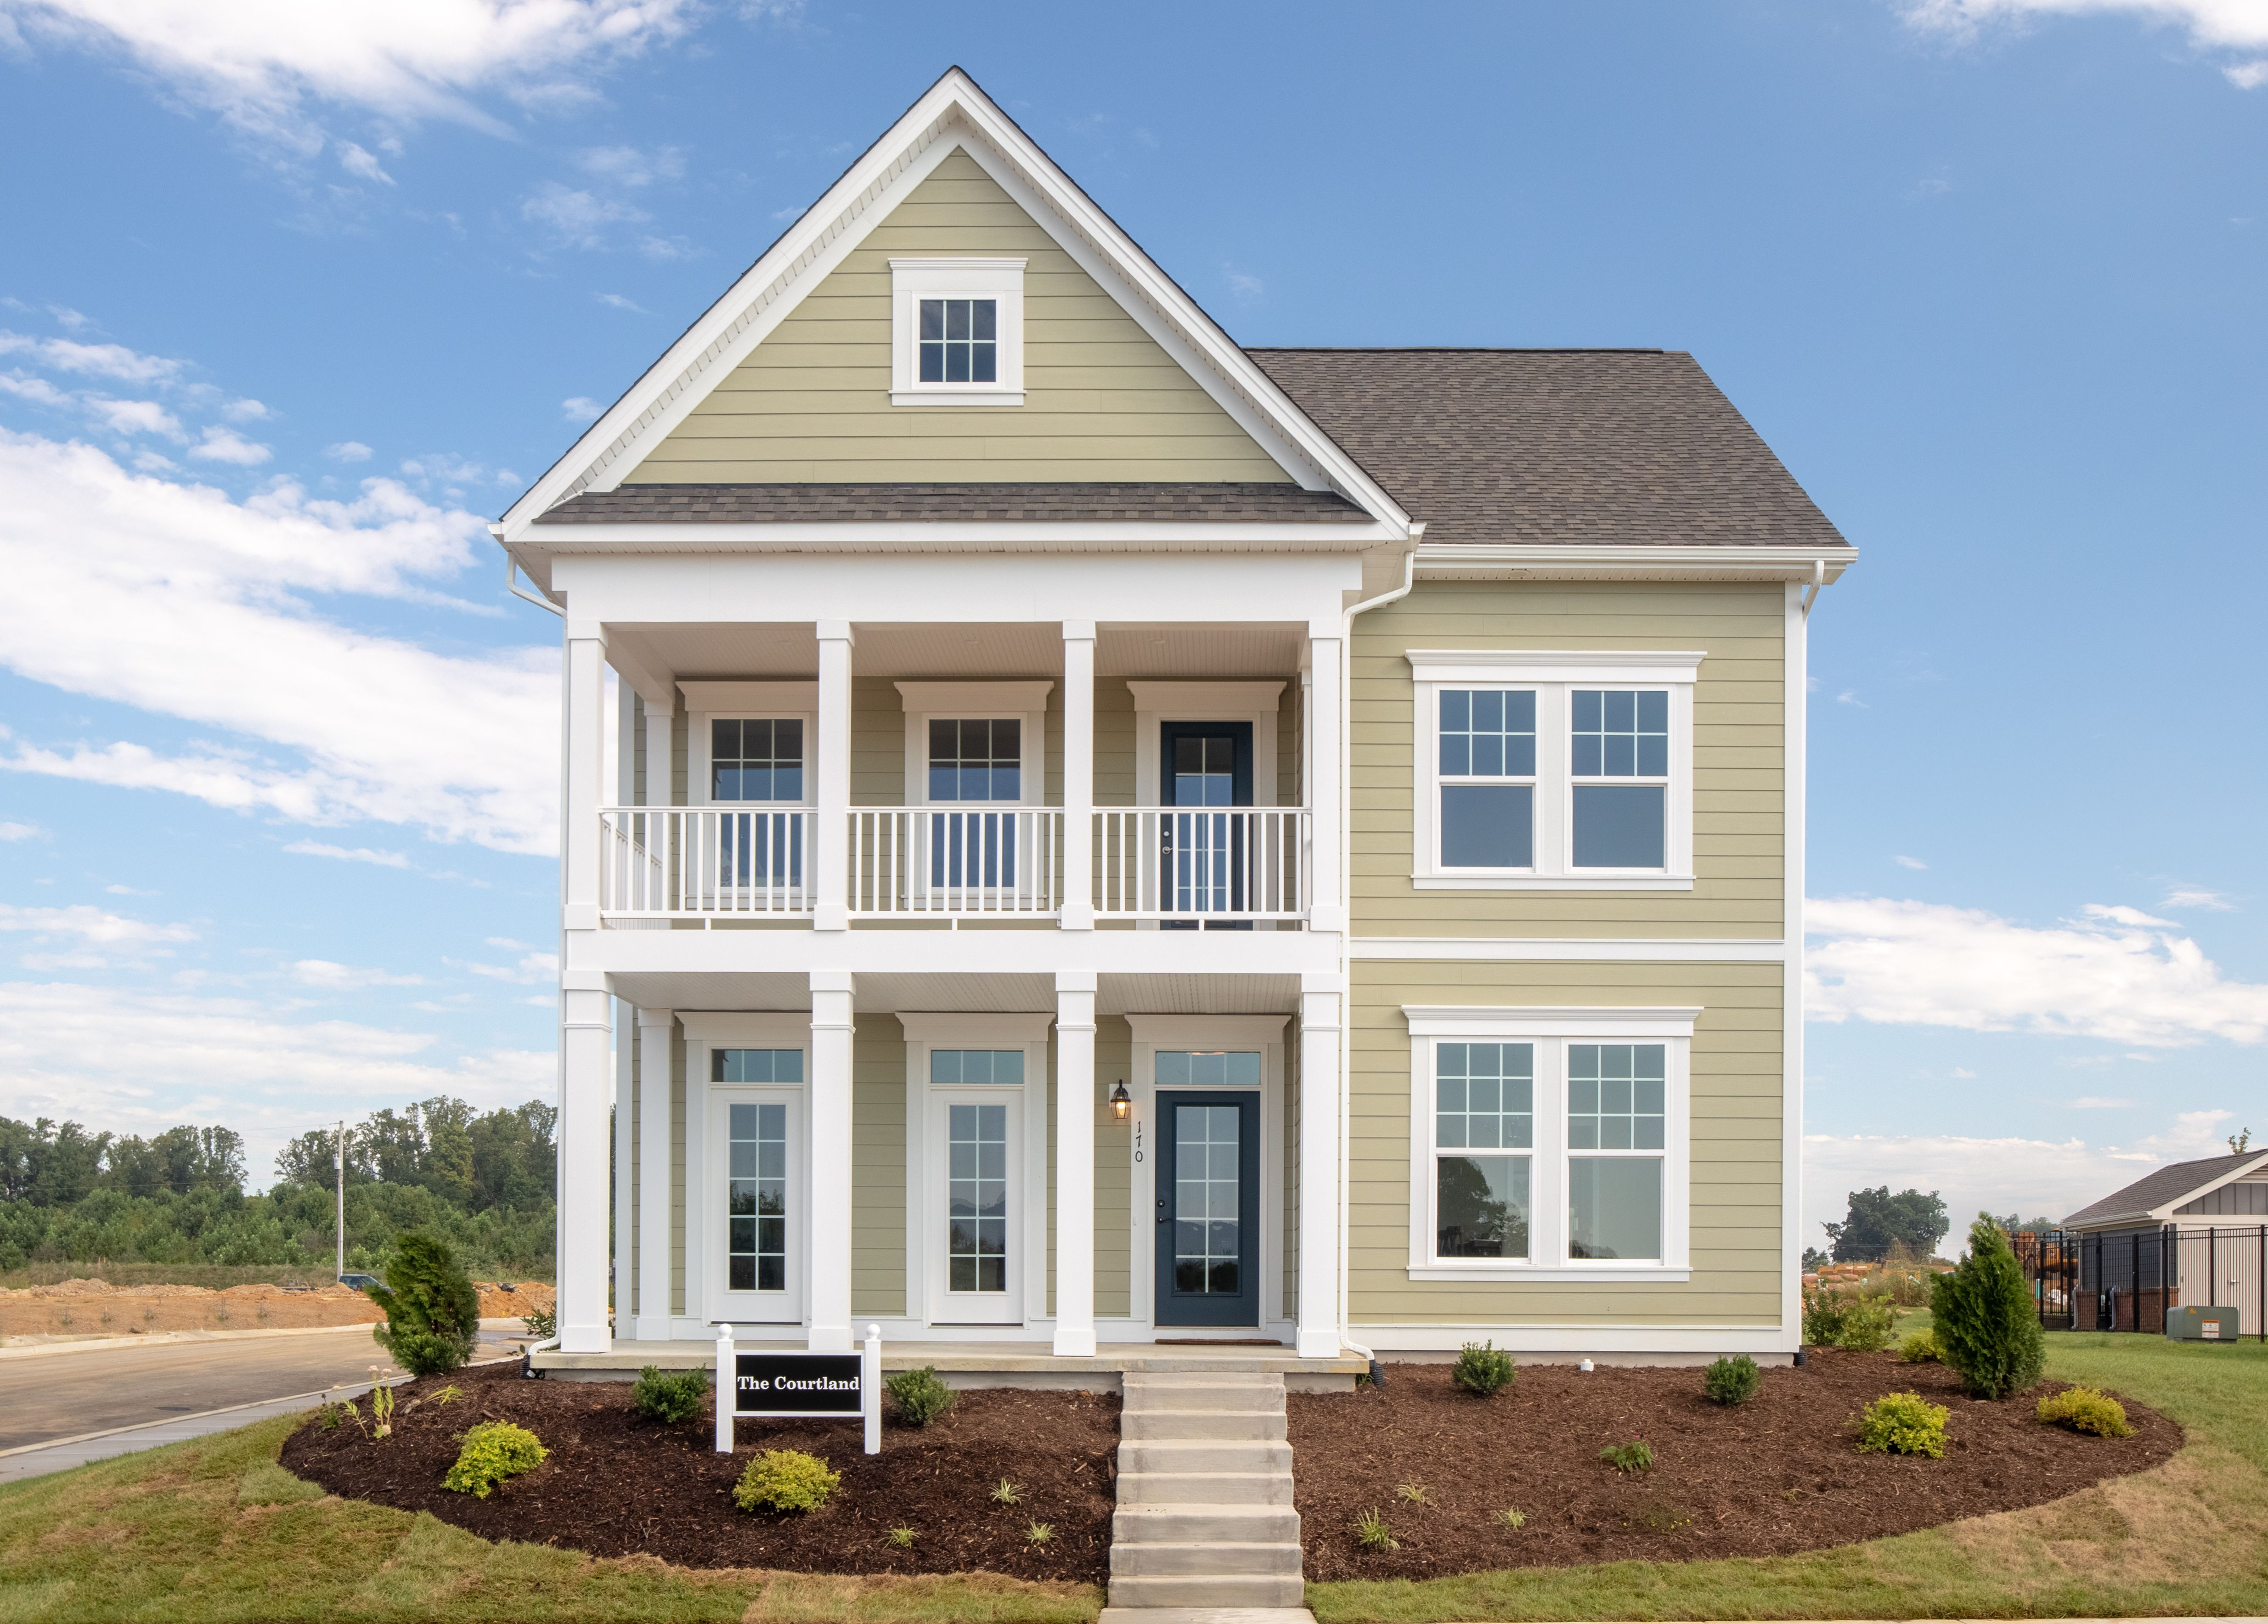 Exterior featured in The Courtland By Stateson Homes in Roanoke, VA